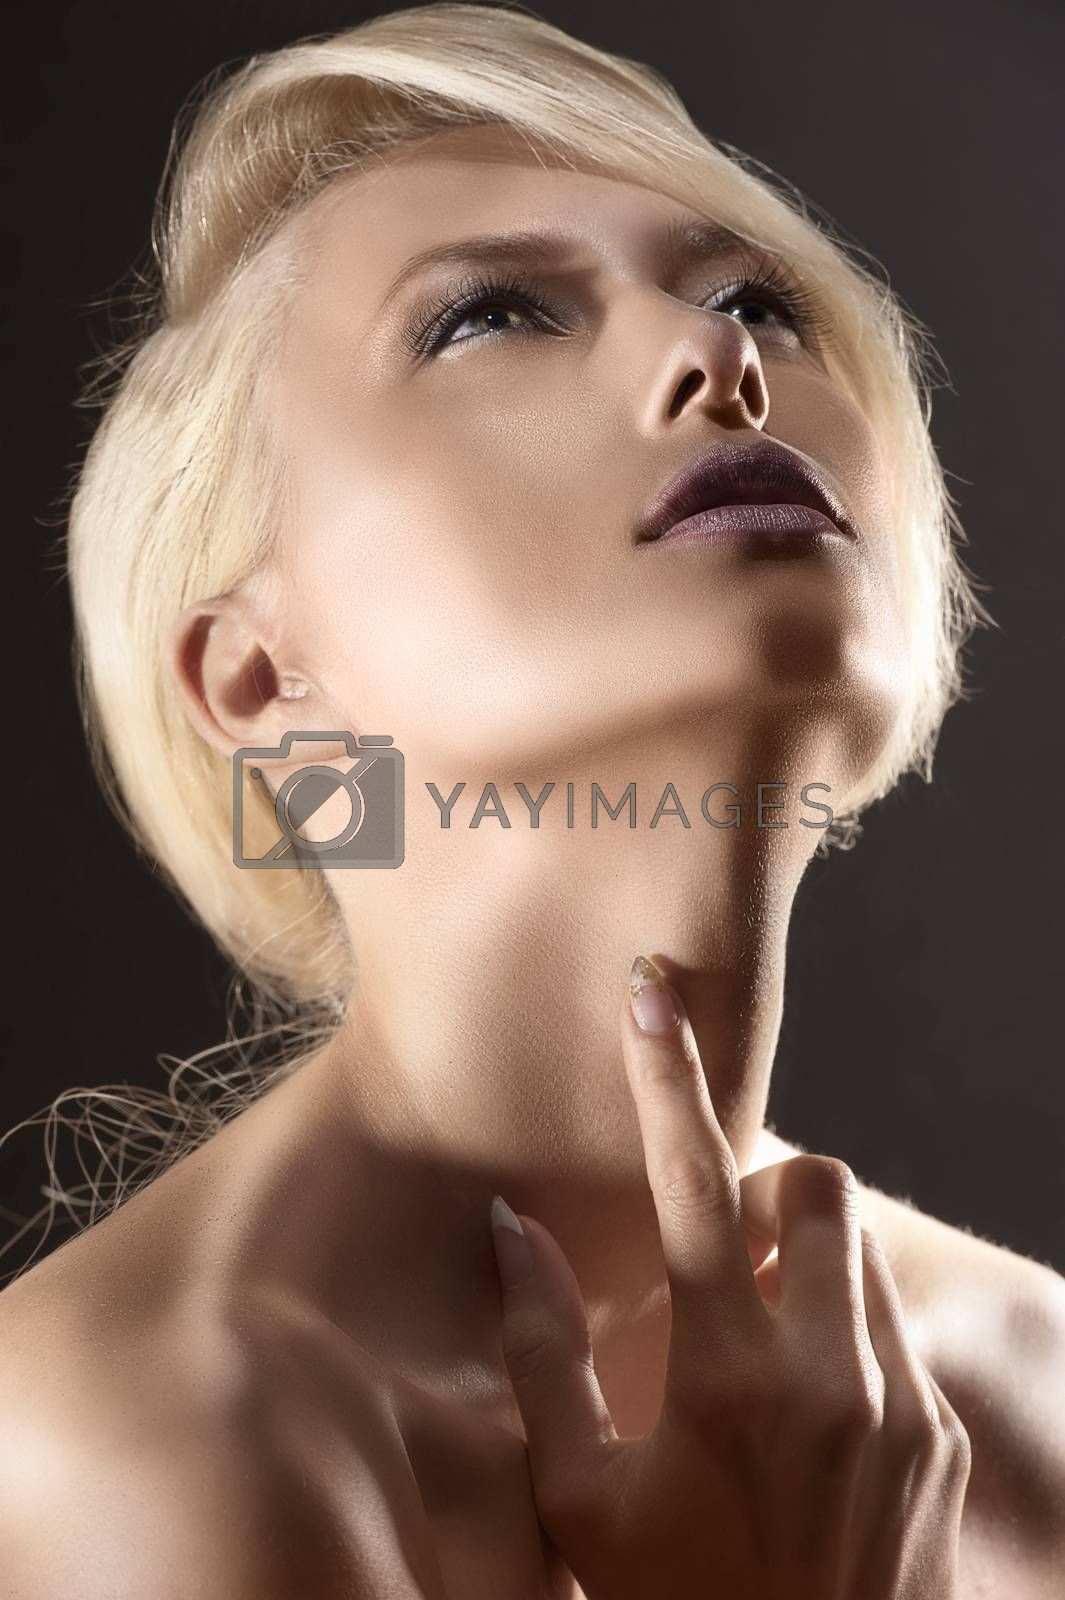 Royalty free image of portrait of a beautiful blonde girl by fotoCD